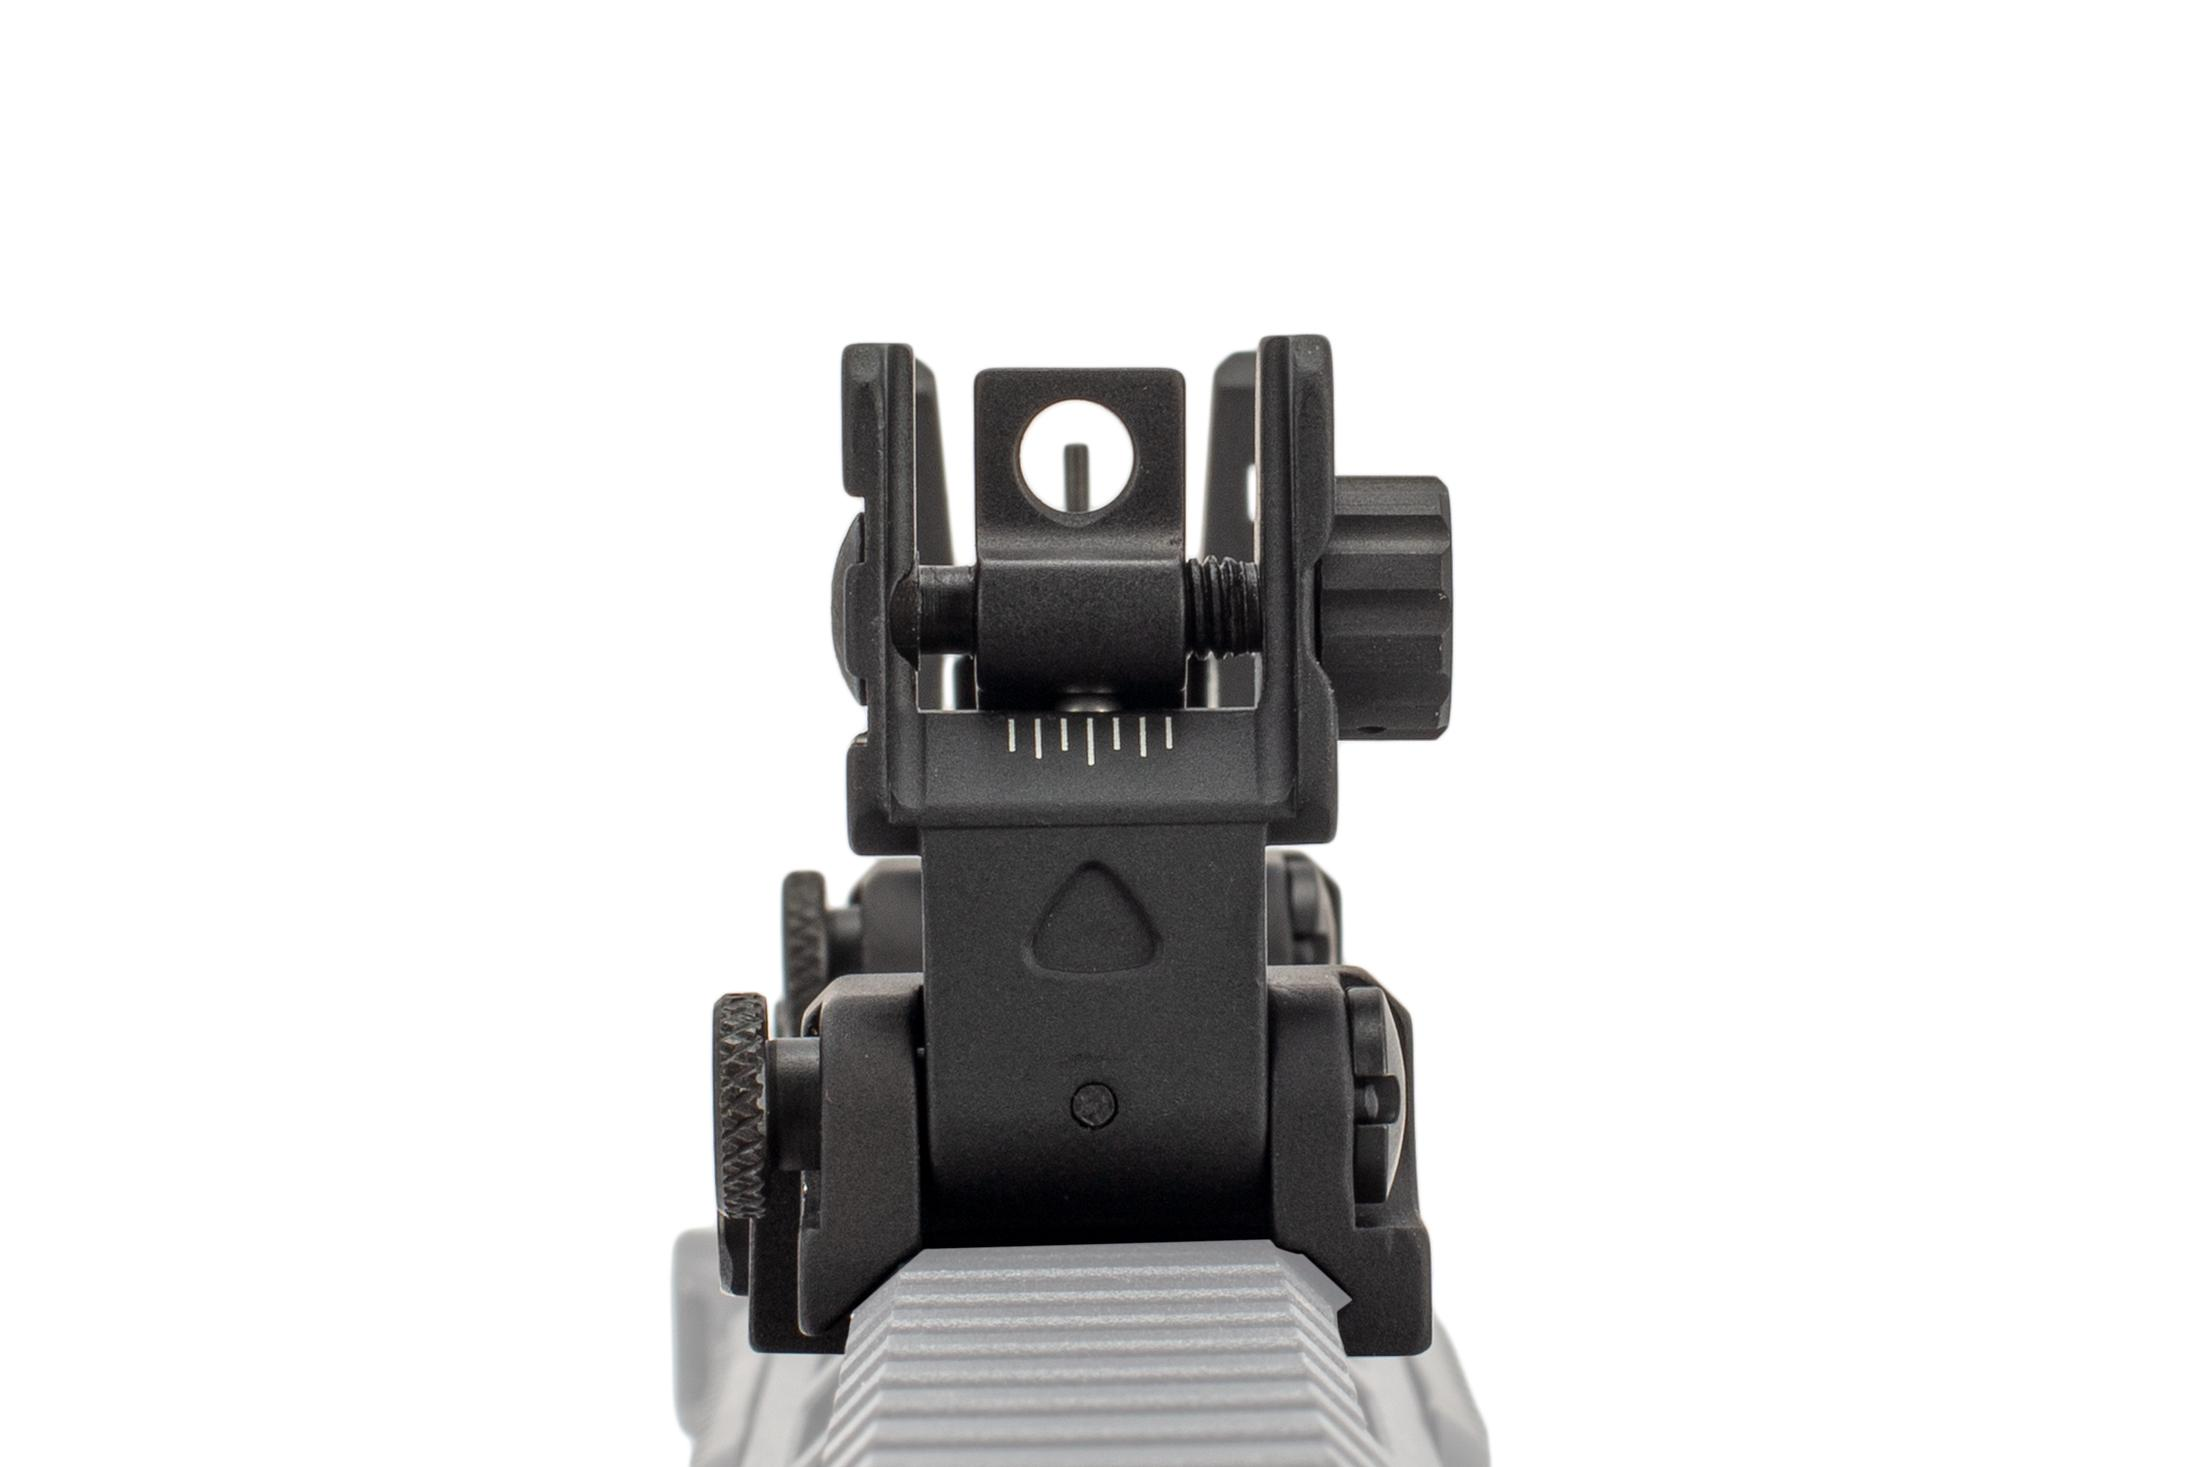 The Guntec Rapid Acquisition Sights features dual rear apertures and adjustable windage